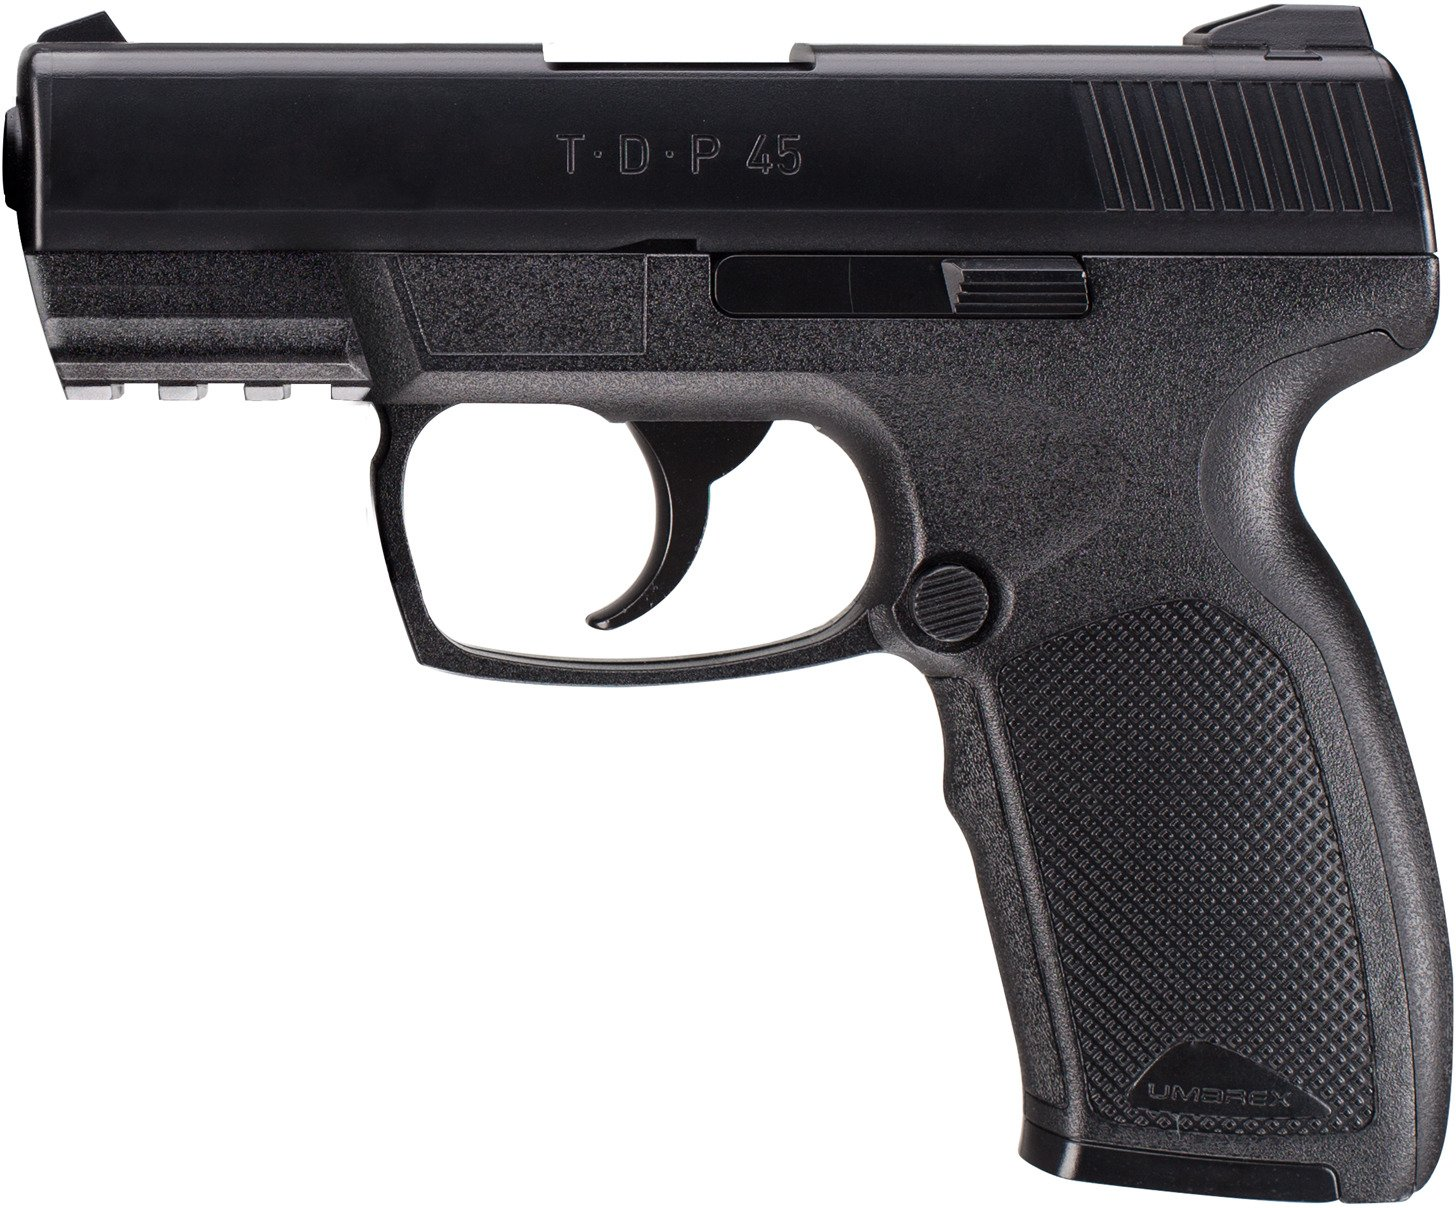 Umarex USA TDP Air Pistol